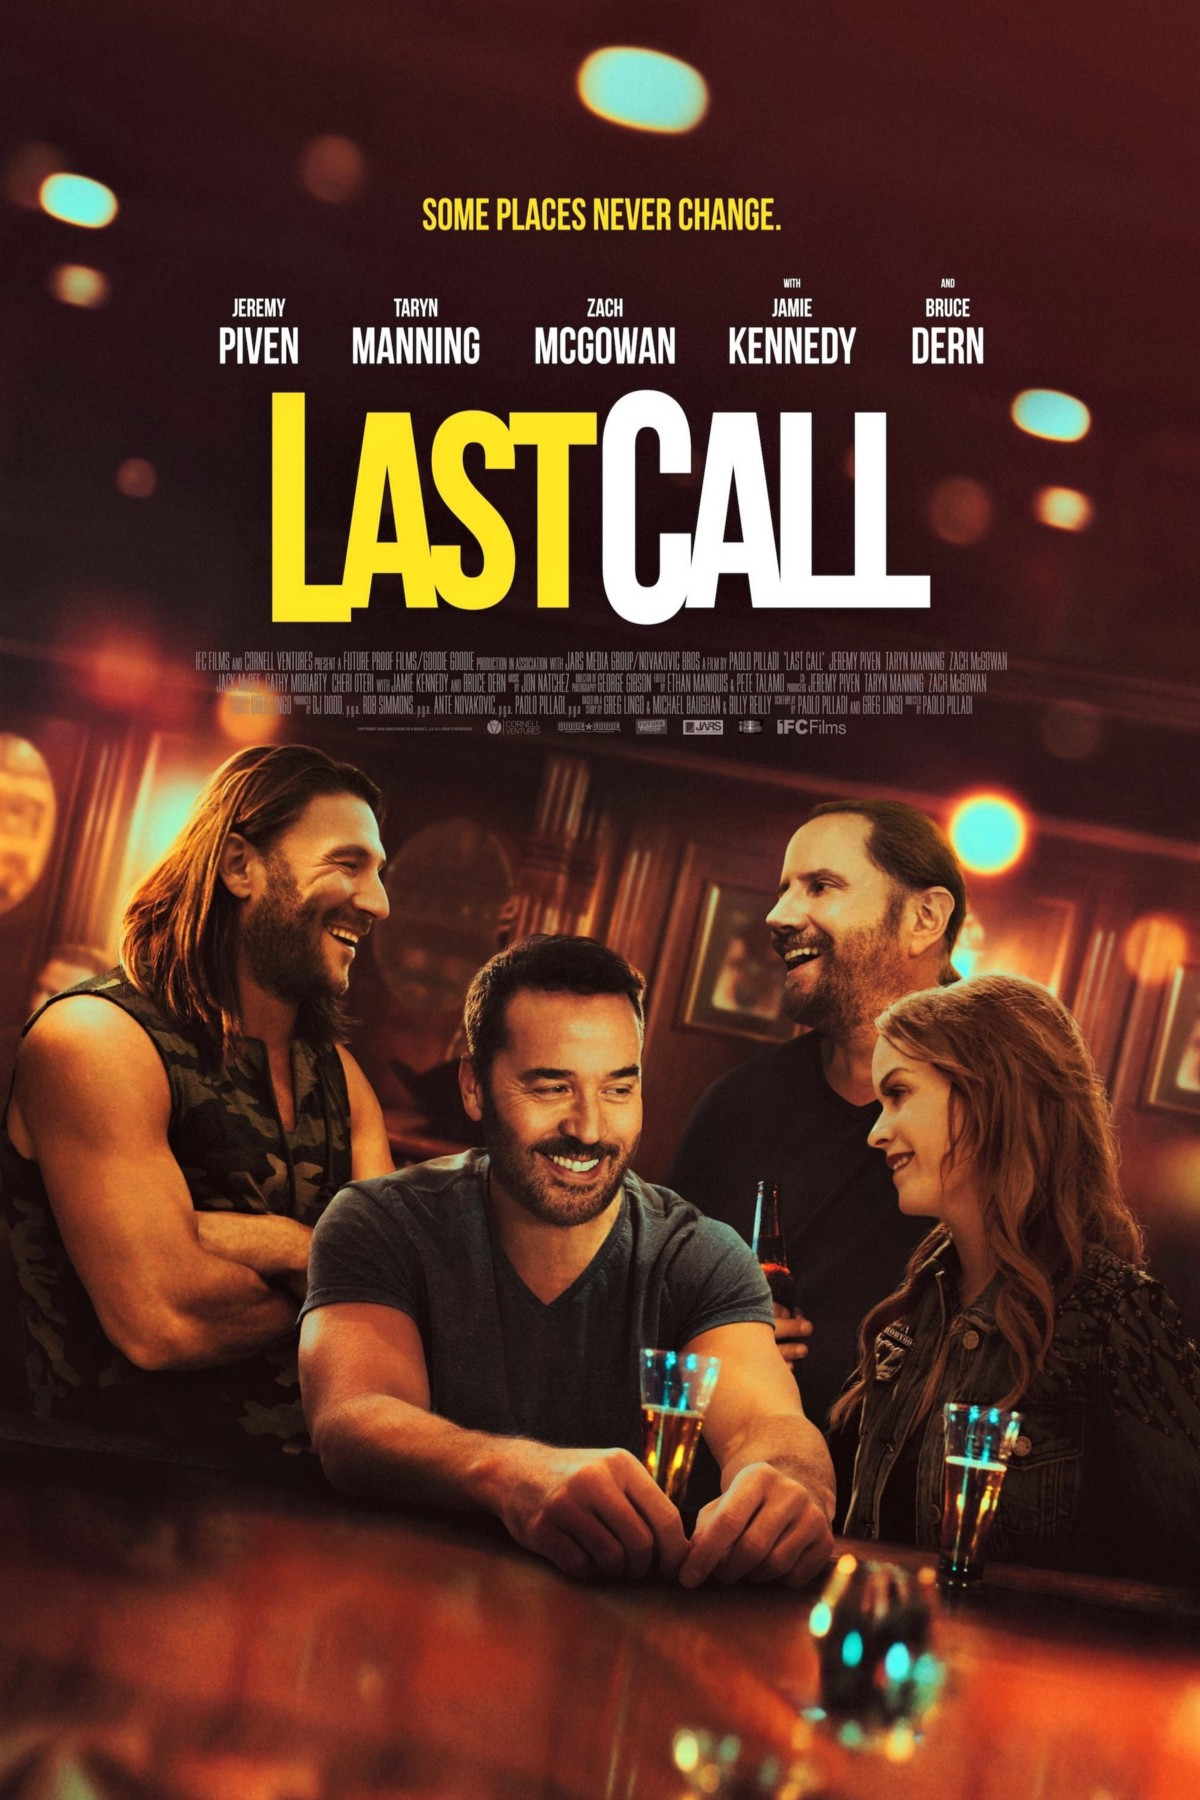 "EXCLUSIVE! — Last Call 2021"" FULL MOVIE WATCH"" - (1080p) 